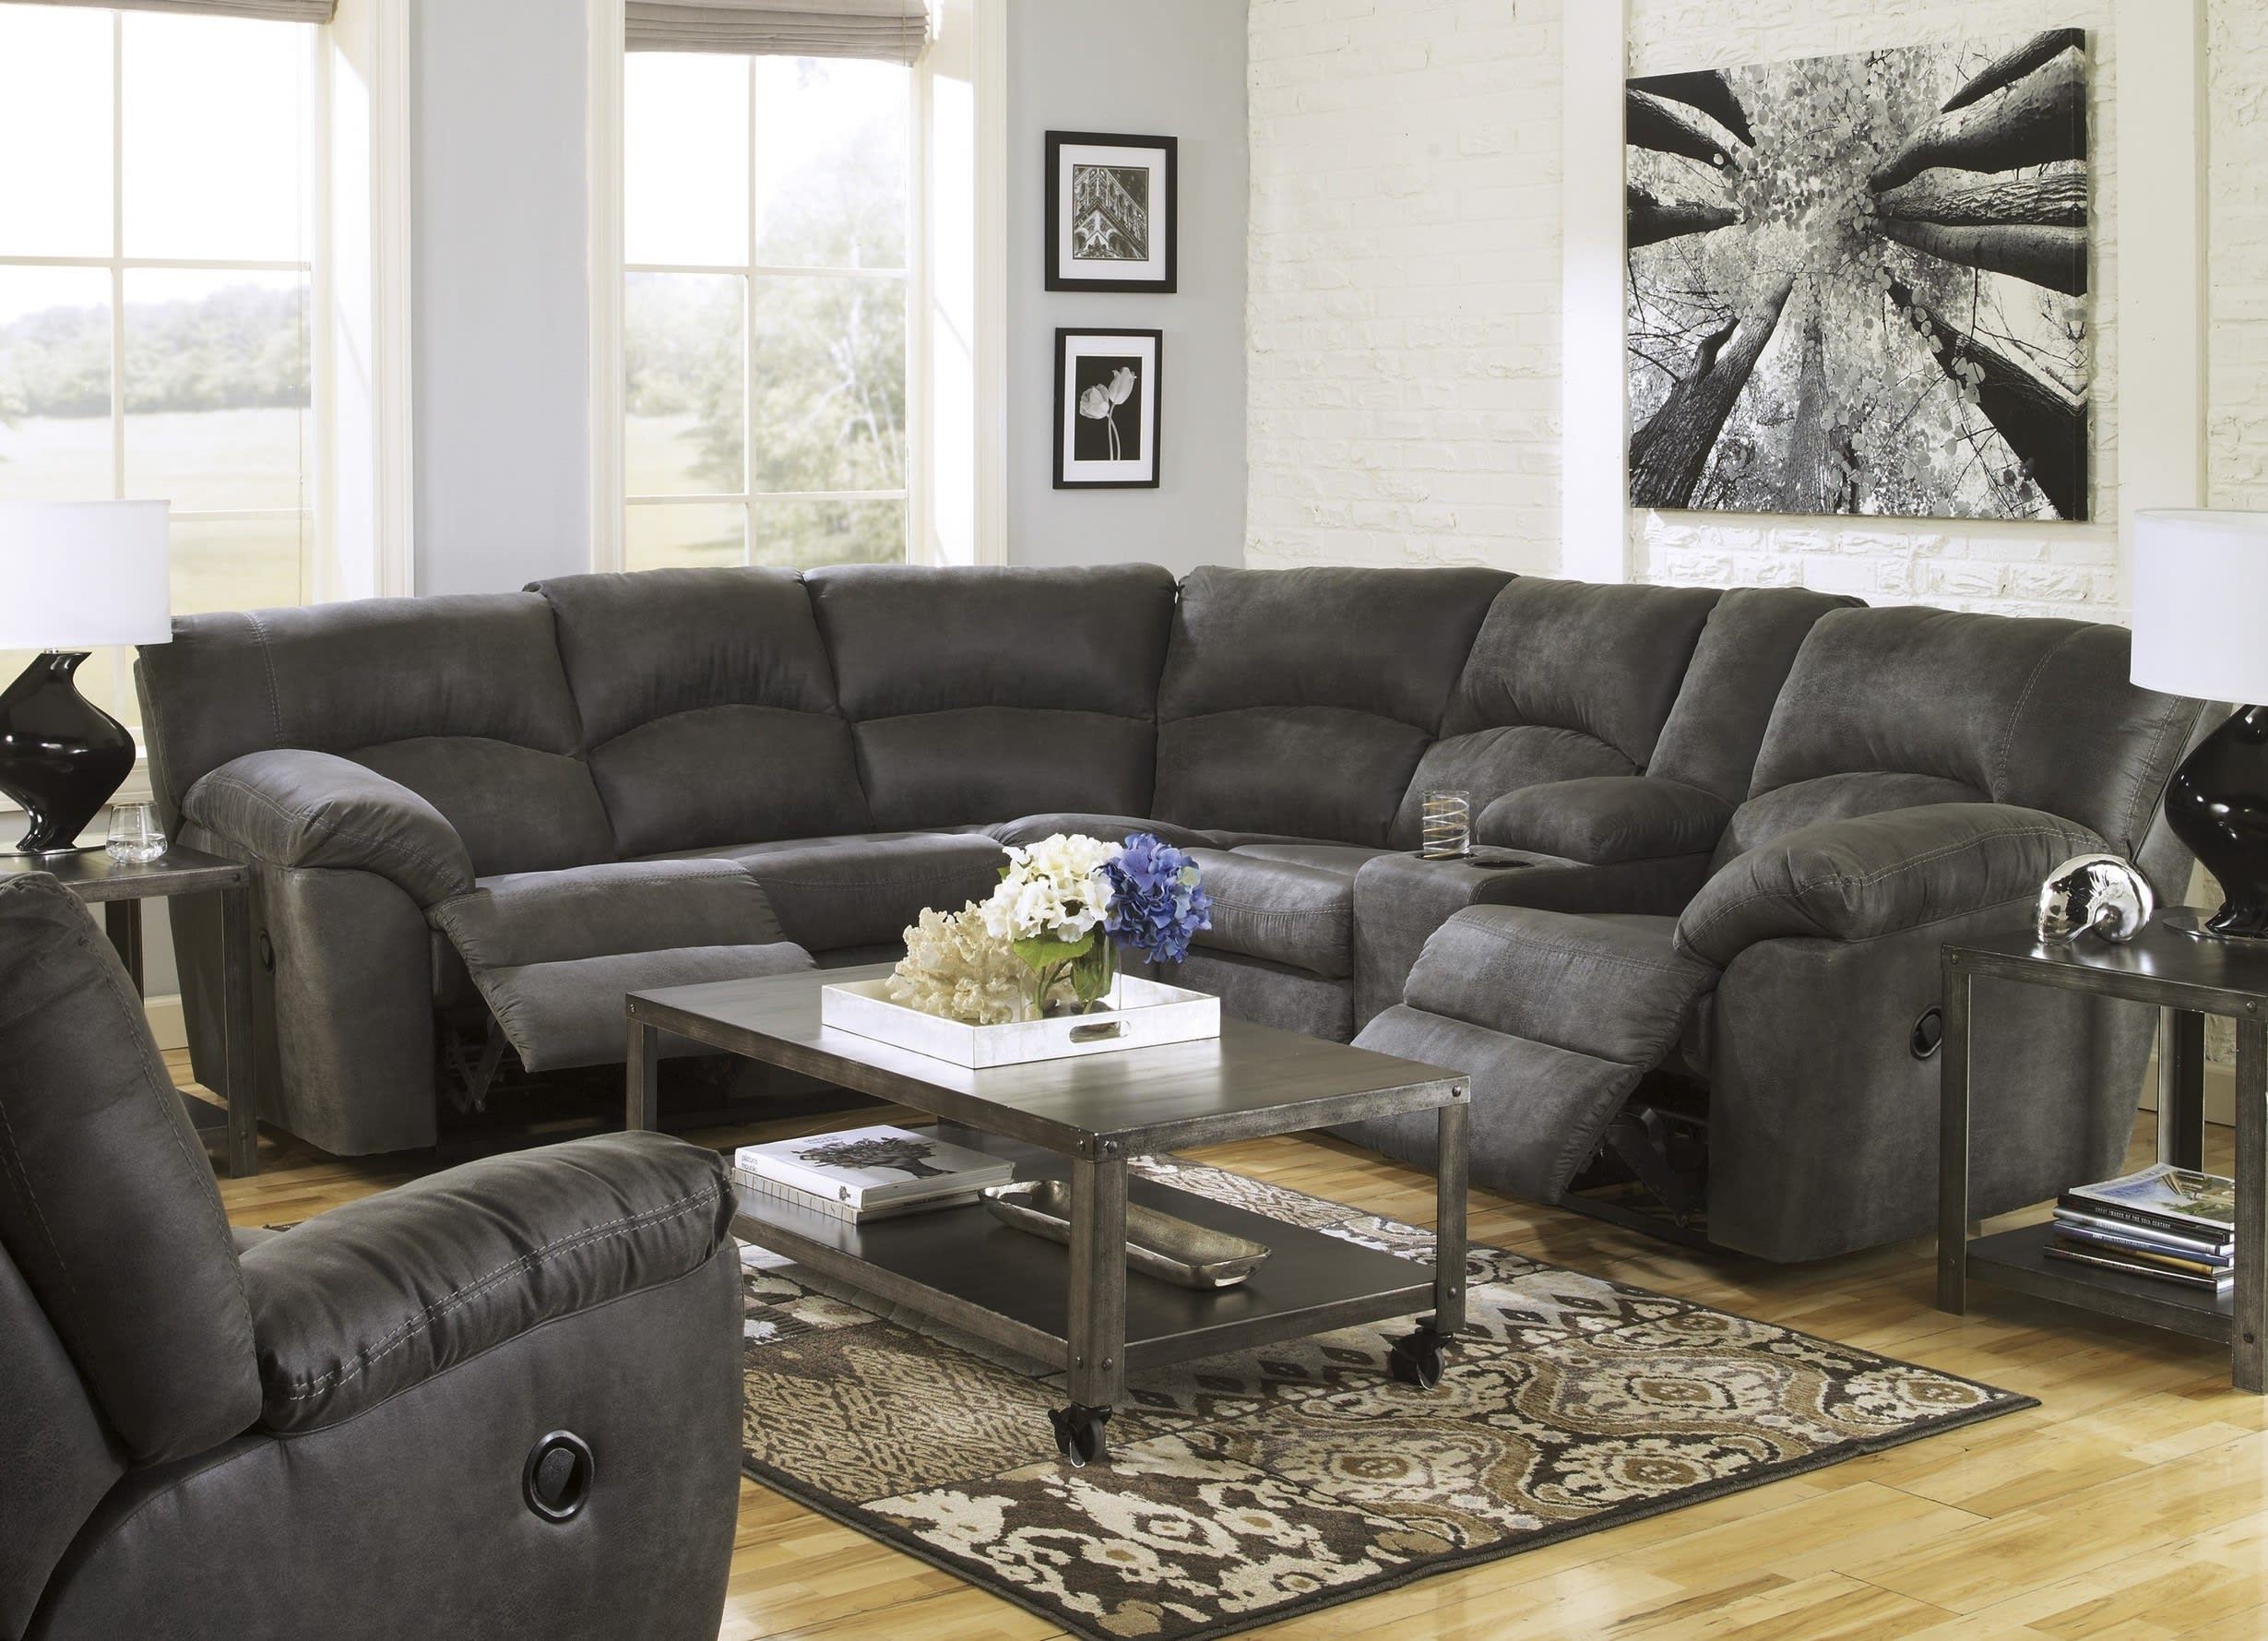 Signature Design by Ashley Tambo Pewter 3 Piece Living Room Set ...